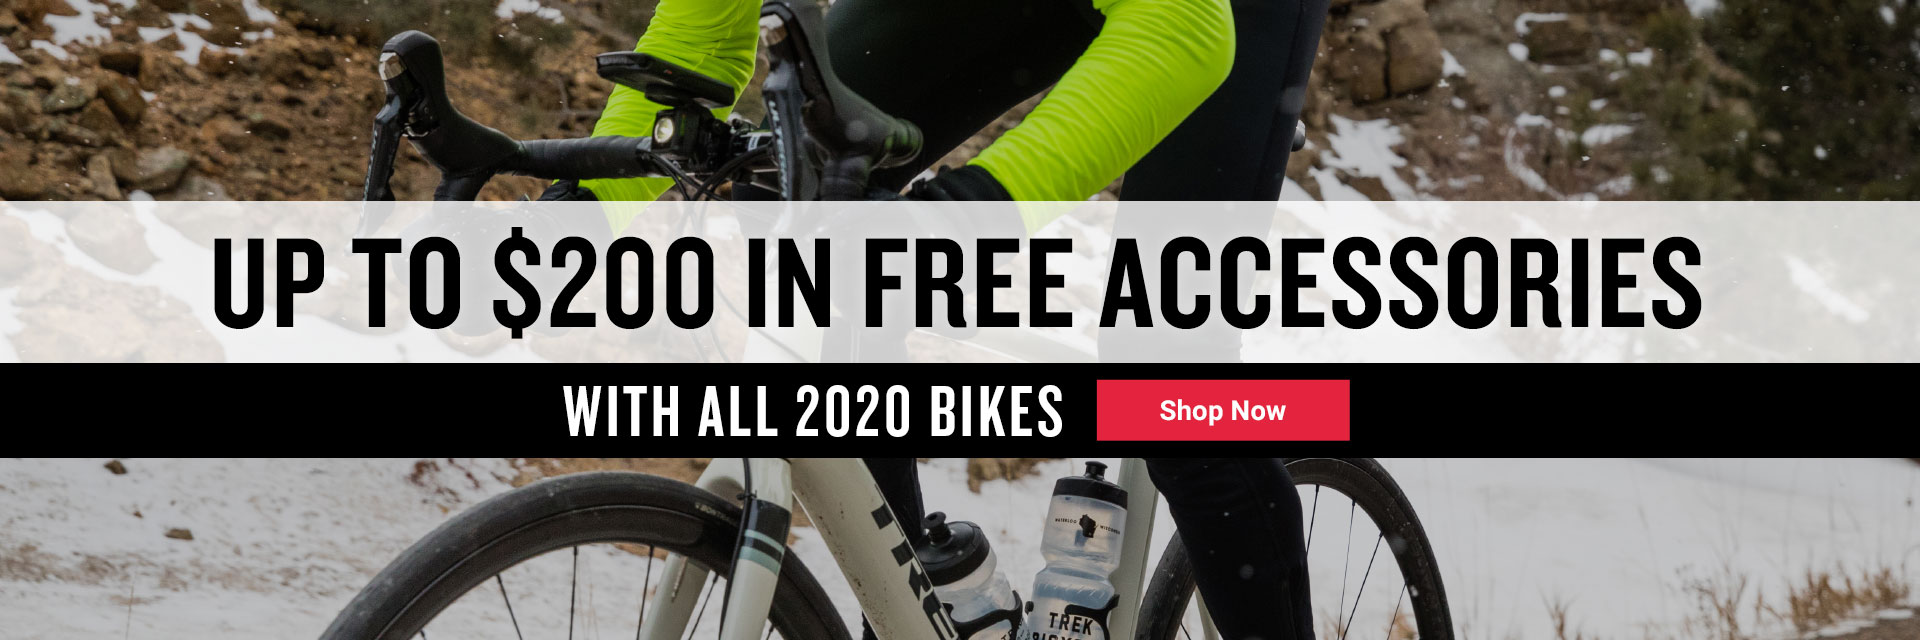 free accessories with all 2020 bikes